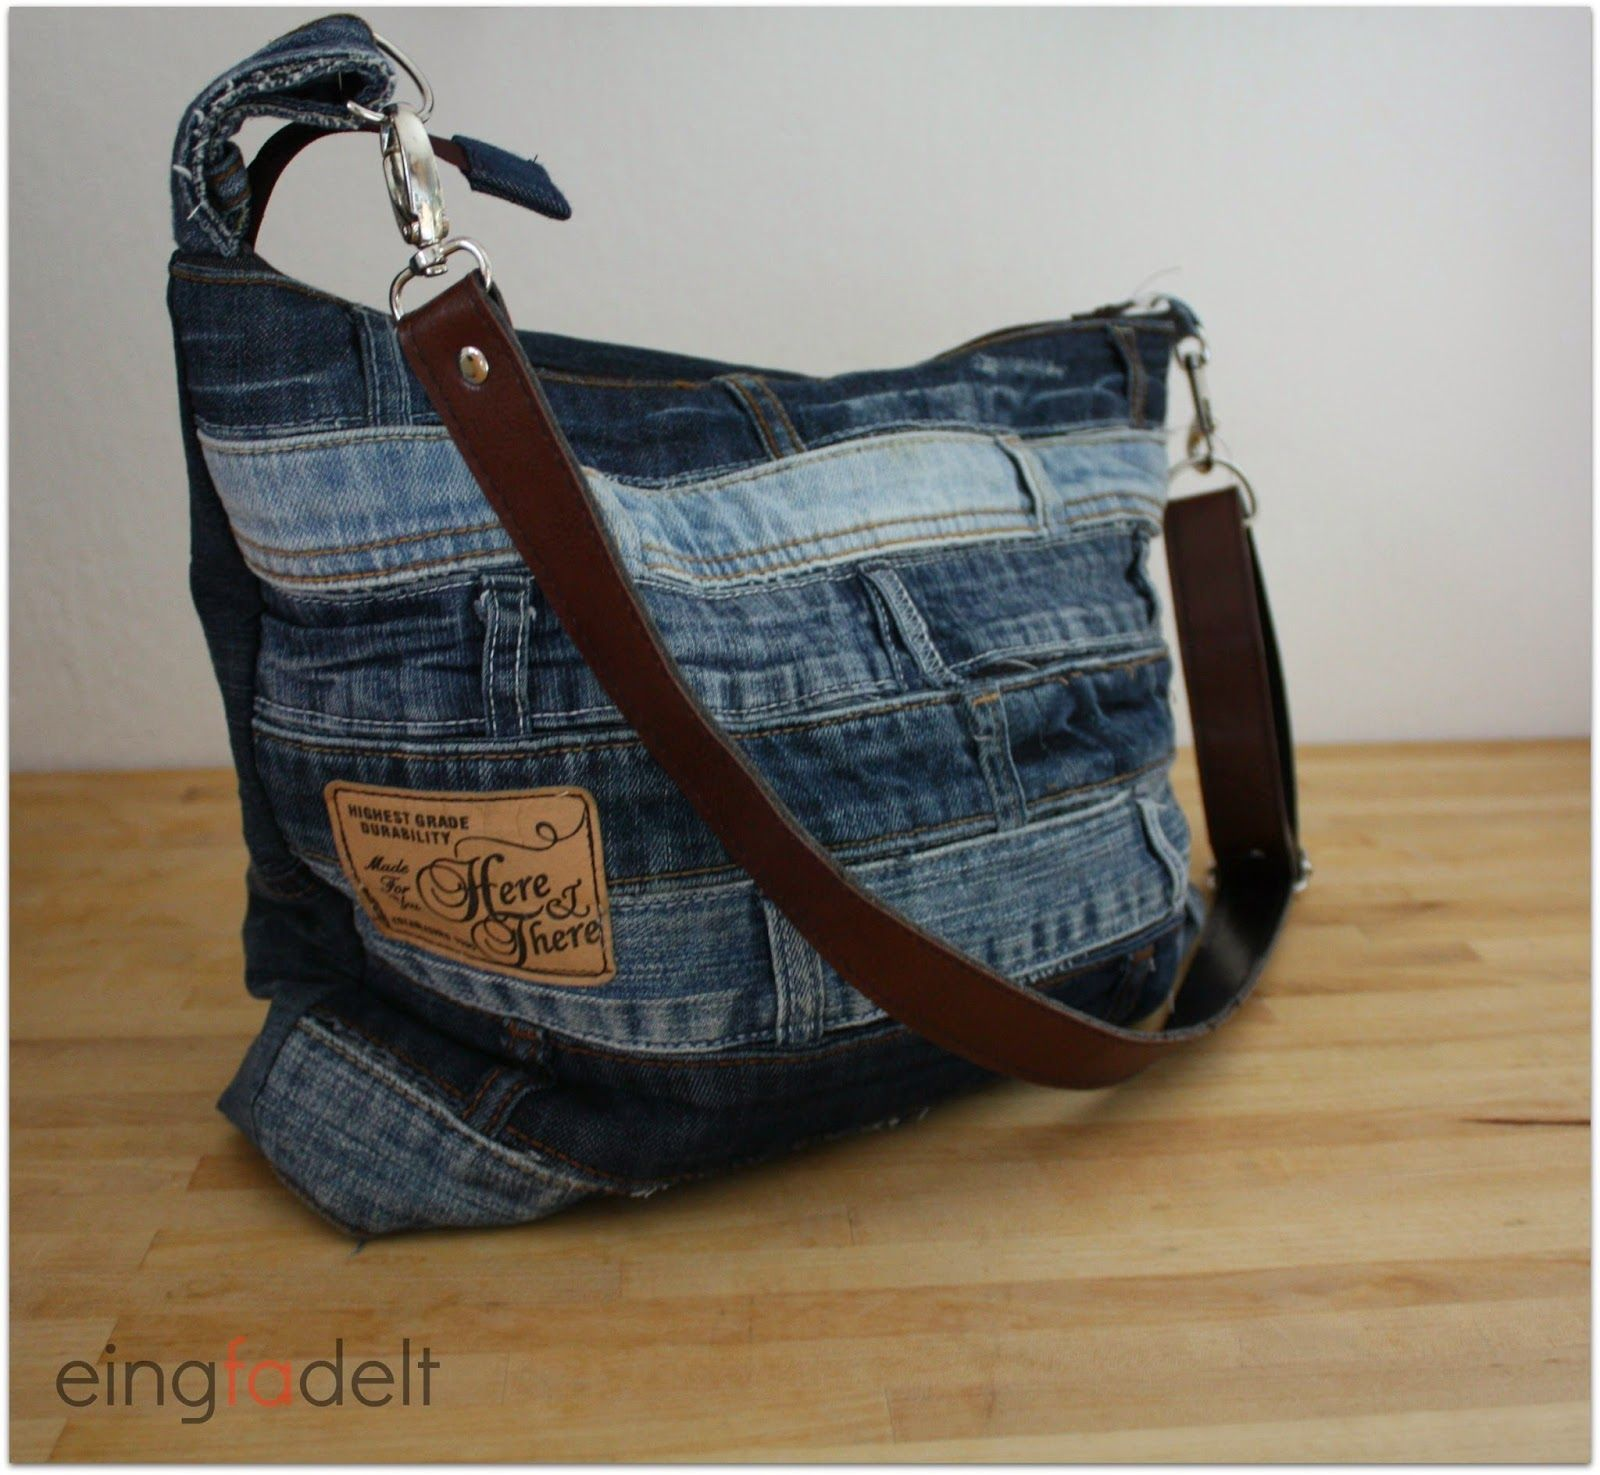 tasche aus jeanshose bag made from pair of jeans upcycling jean cycle pinterest. Black Bedroom Furniture Sets. Home Design Ideas